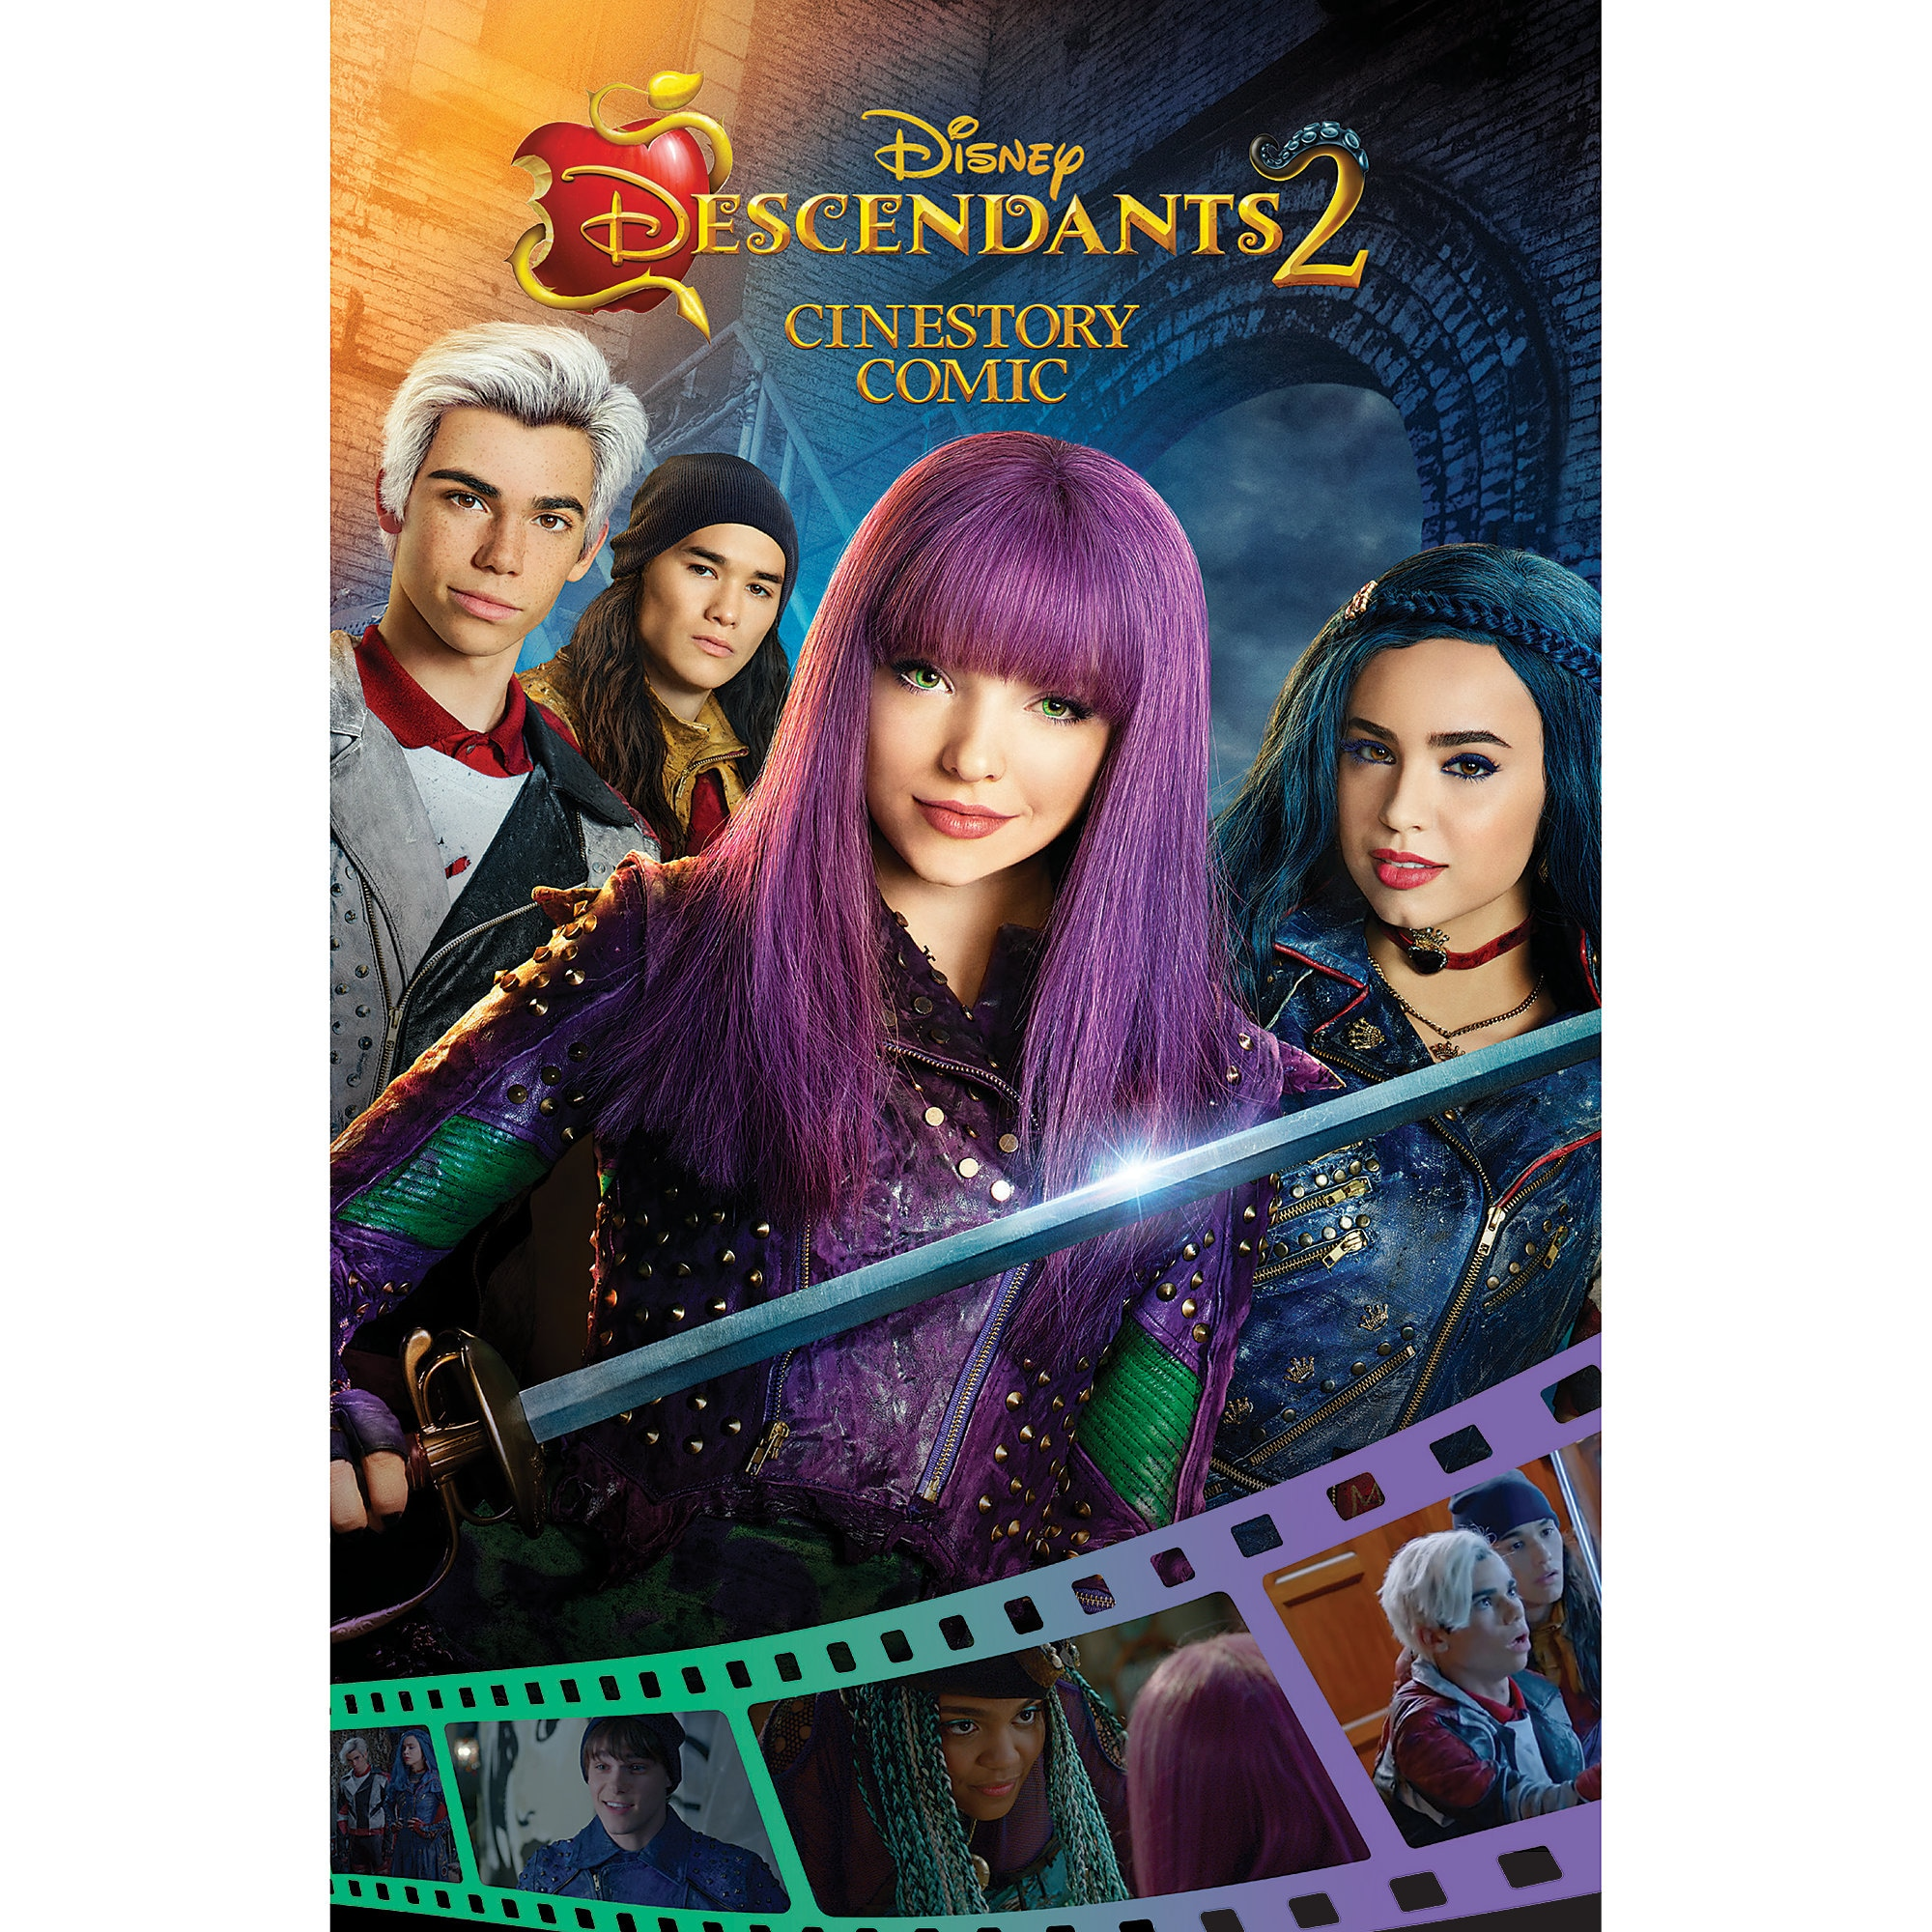 Descendants 2 Cinestory Comic